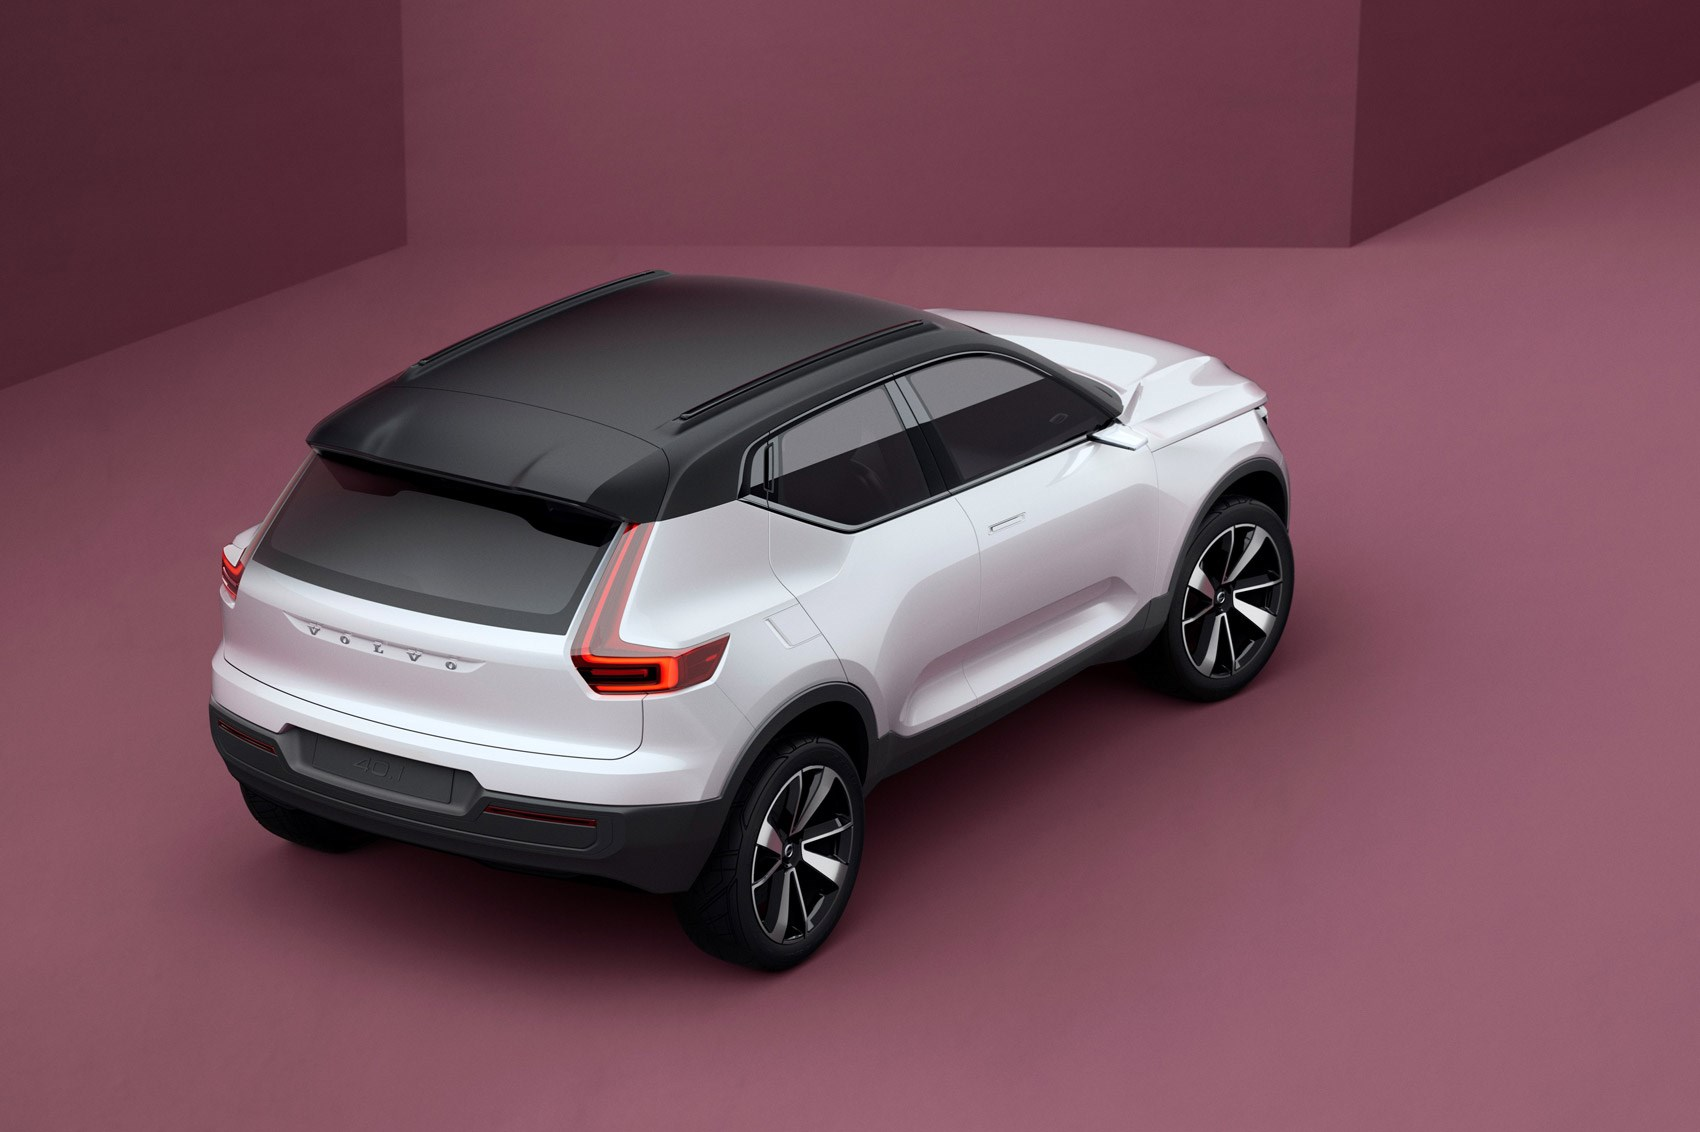 Volvo Previews New 40 Series Models With Double Concept Car Unveil